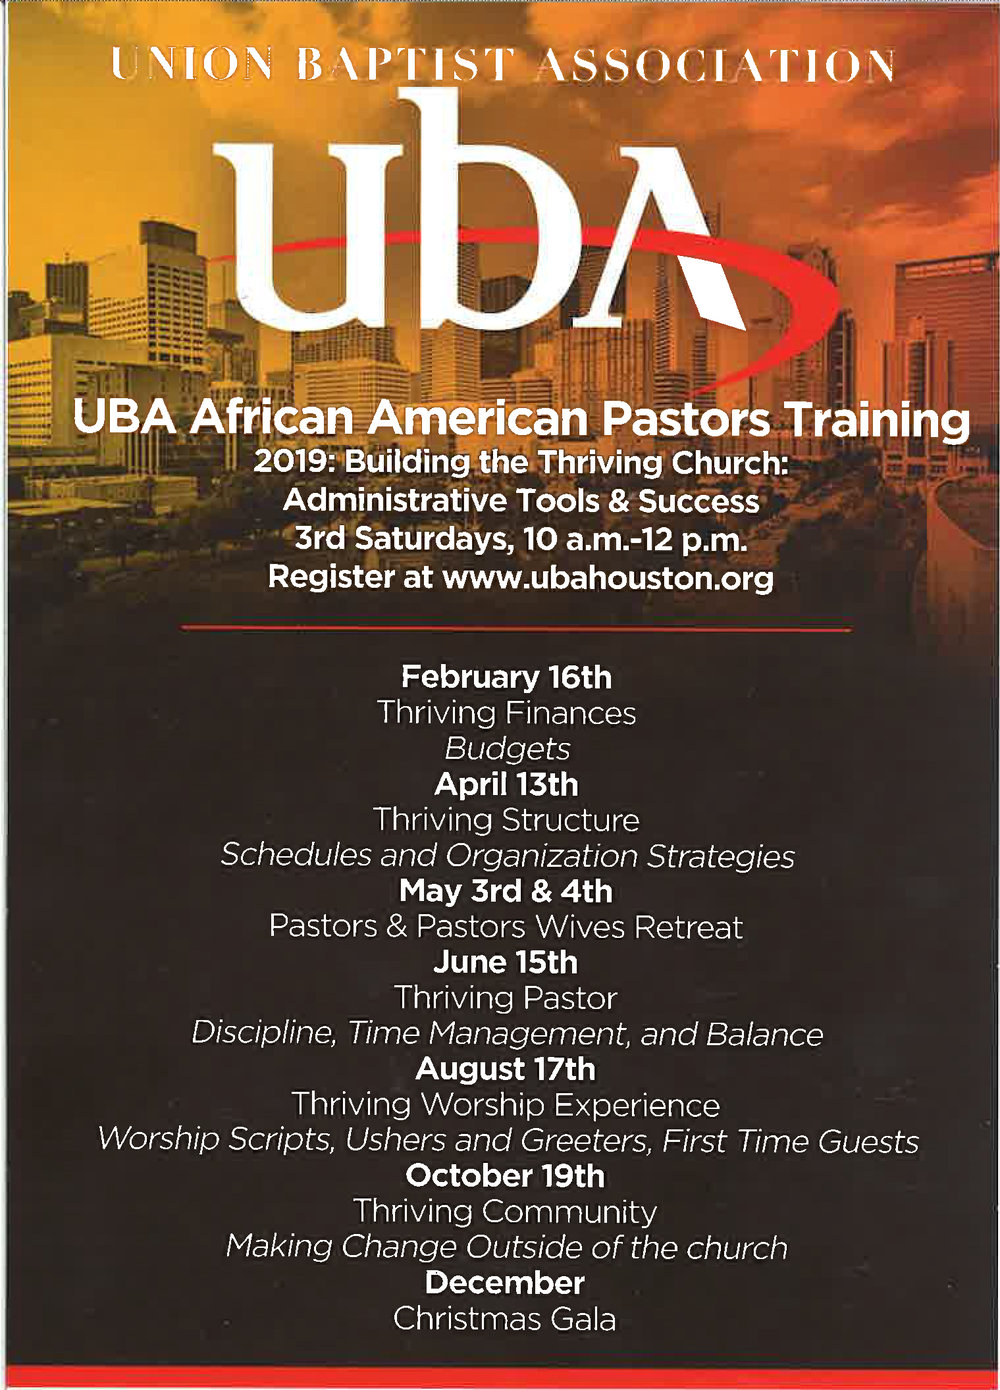 2019: The Thriving Church - Join us for the 2019 UBA African American Pastors Training for Building the Thriving Church. No Fee. Sessions will be held at the UBA Offices at 2916 W TC Jester, Suite 200, 10 am to Noon. Hosted by the UBA African American Ministries Team: Mike Pender, Team Leader; Bryant Lee & Lawrence Scott.